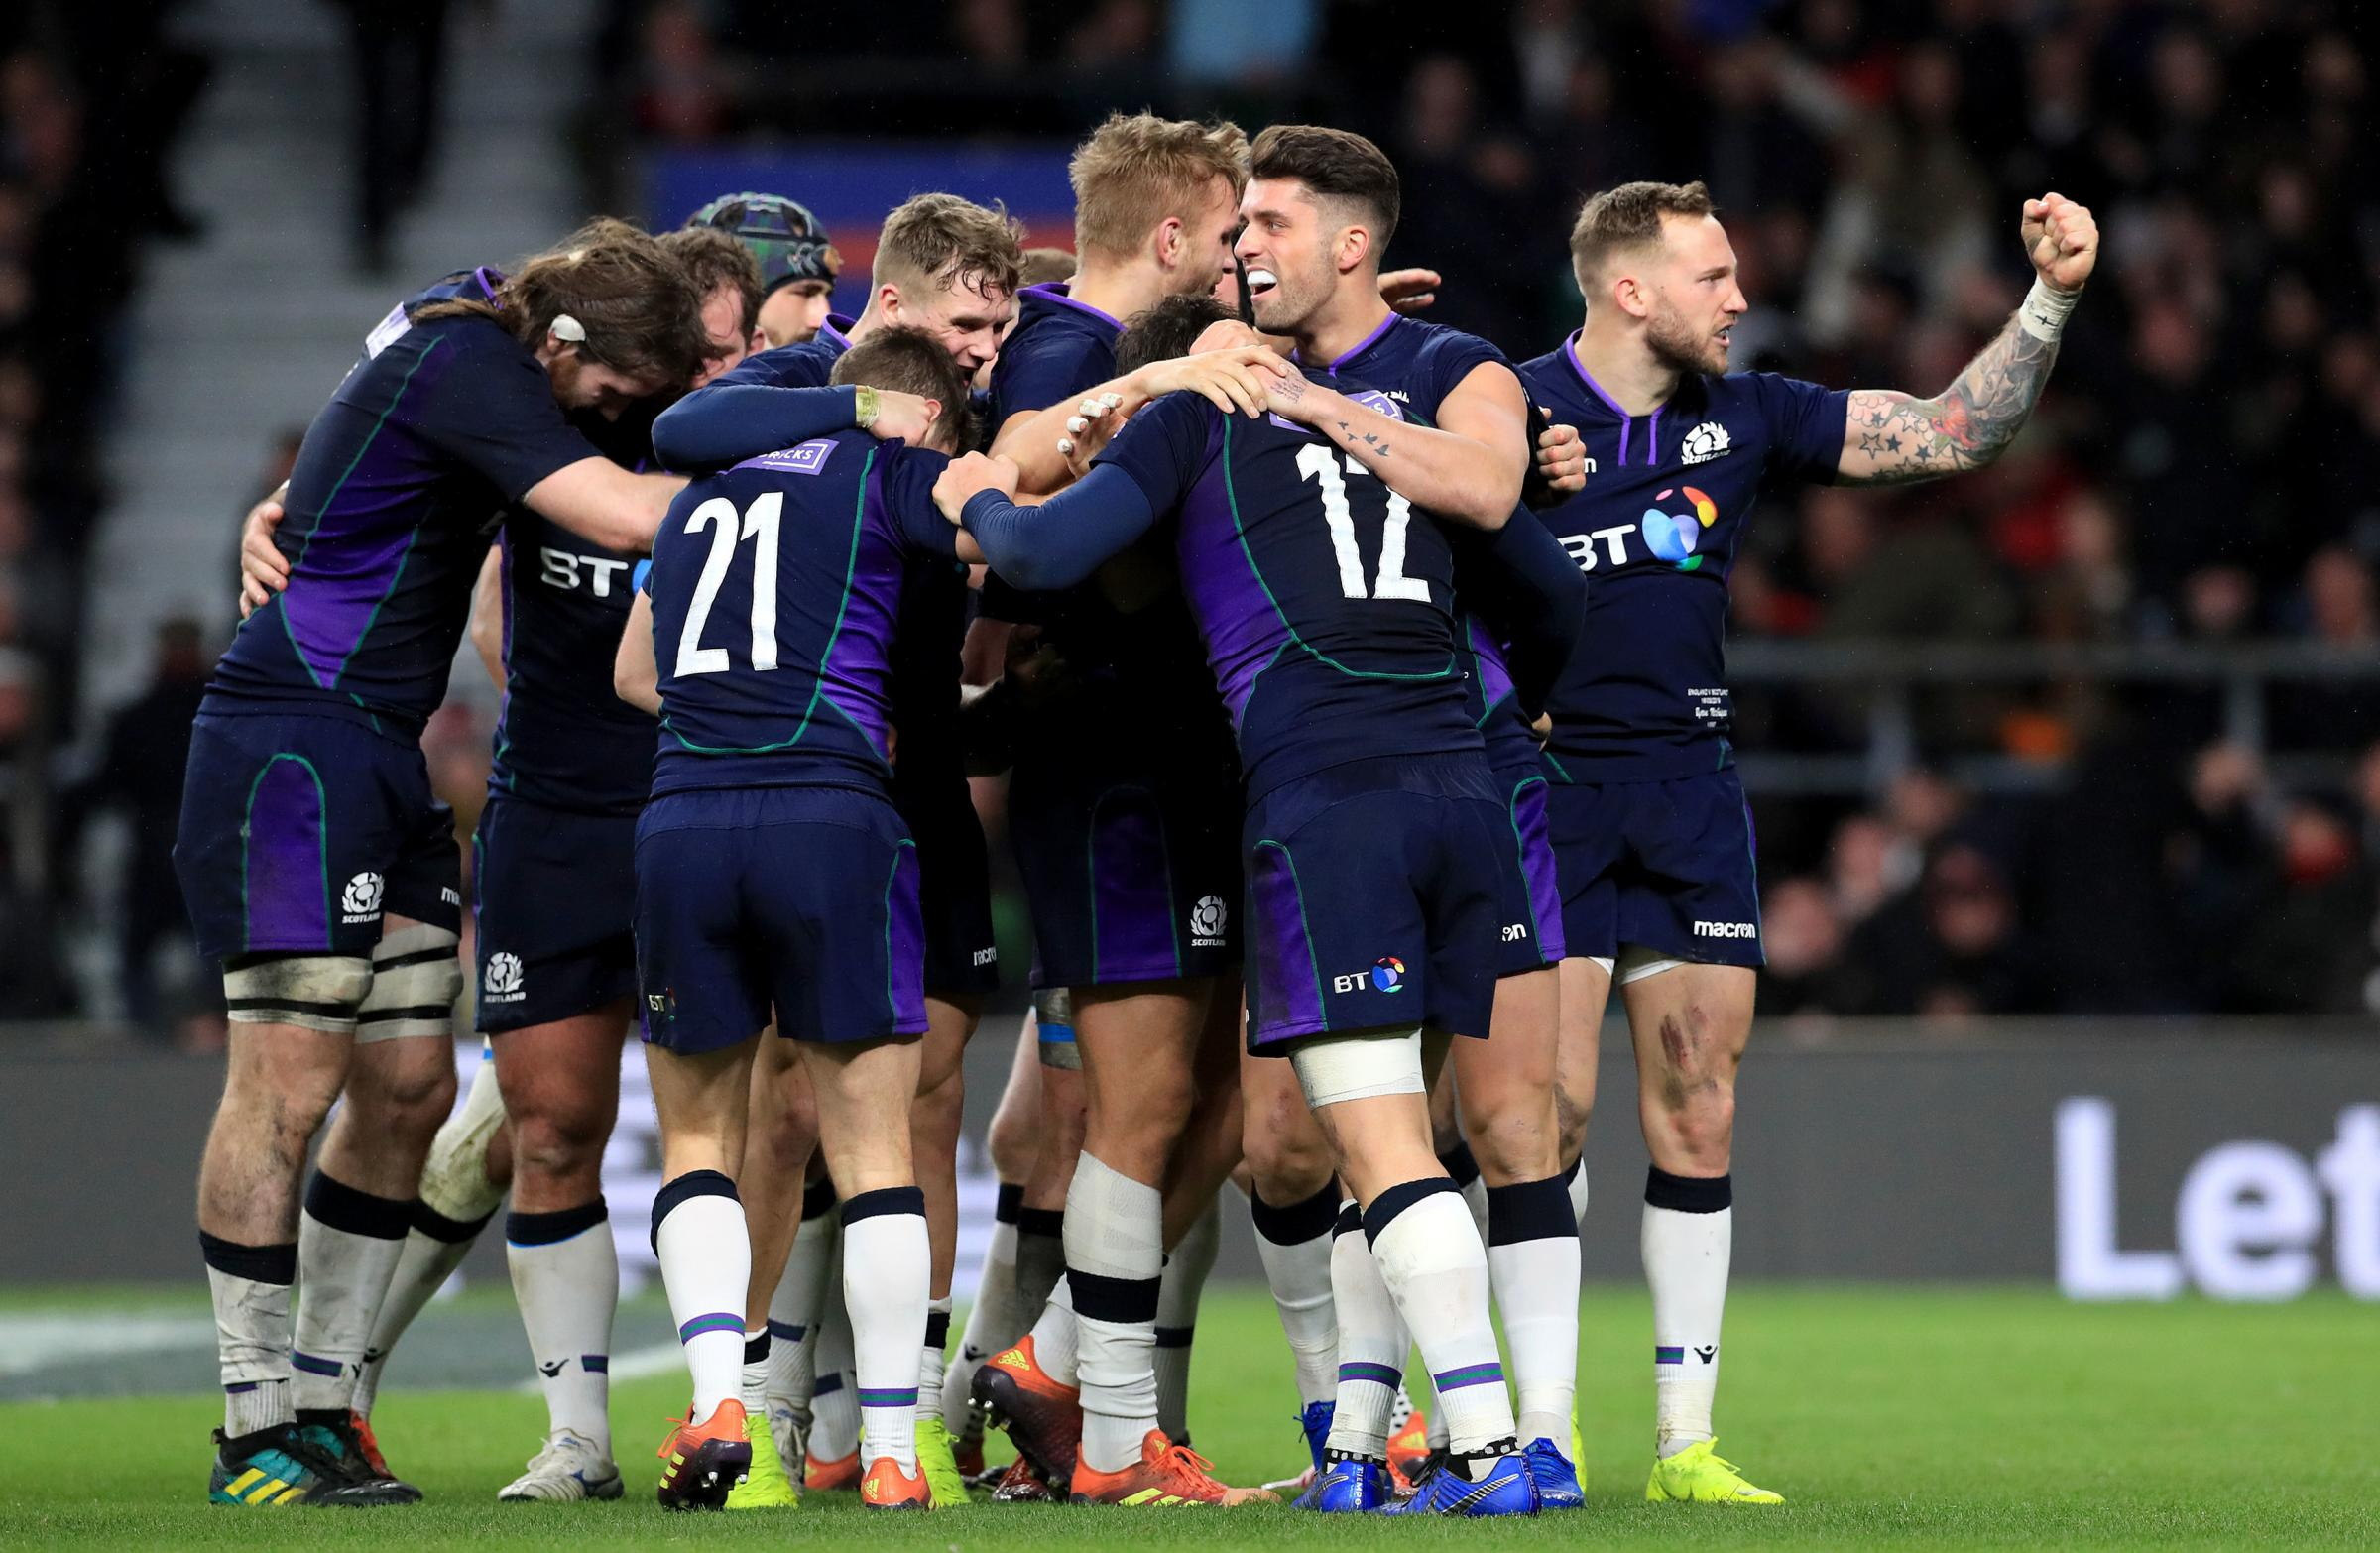 Scotland's Sam Johnson (12) celebrates with his team-mates after scoring his side's sixth try of the game during the Guinness Six Nations match at Twickenham Stadium, London. PRESS ASSOCIATION Photo. Picture date: Saturday March 16, 2019. See PA